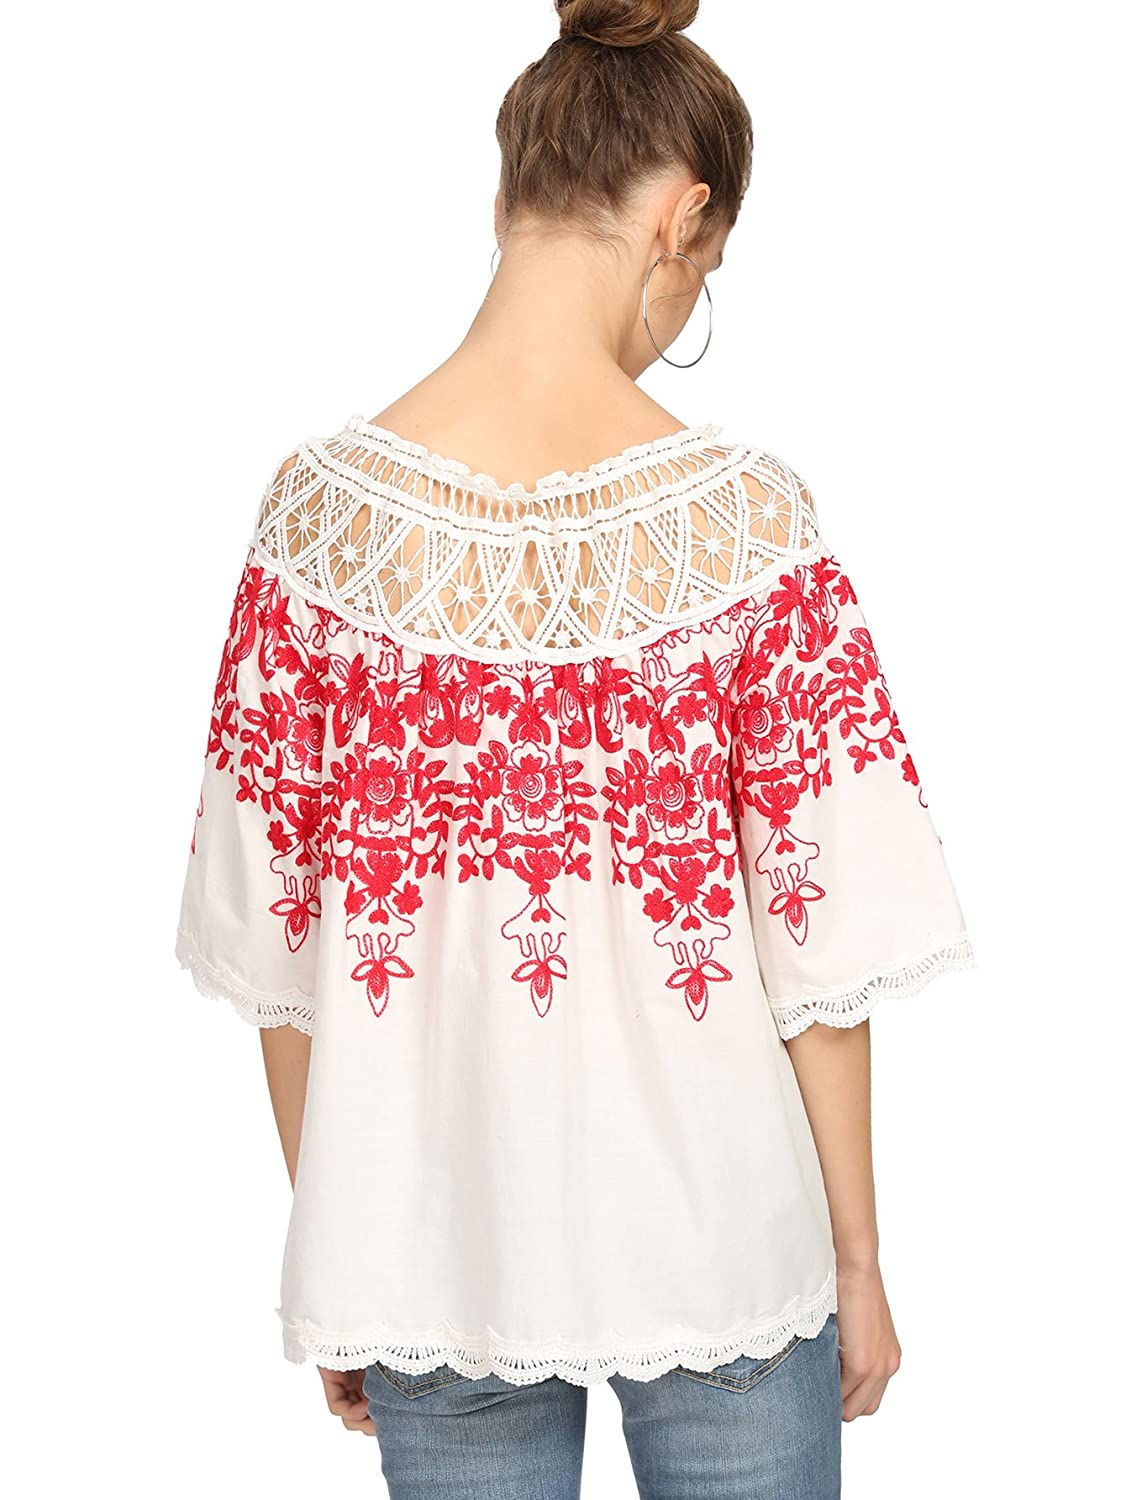 Romwe Womens Cold Shoulder Floral Embroidered Lace Scalloped Hem Fiction Blouse With Obi Off White Top At Amazon Clothing Store